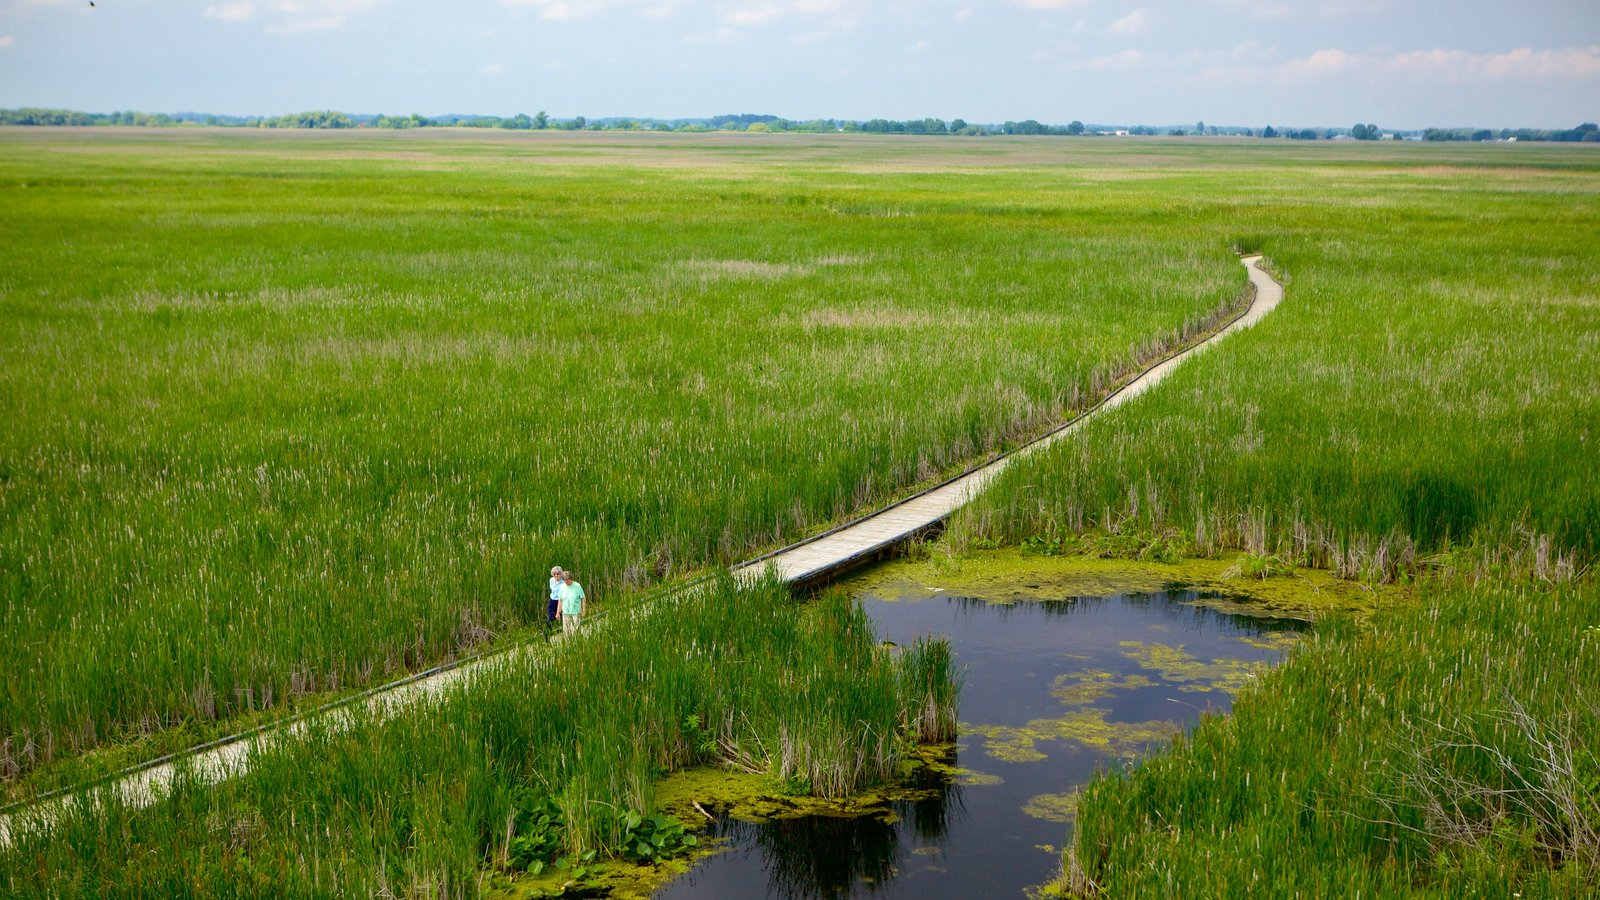 Point Pelee National Park showing wetlands, a bridge and tranquil scenes